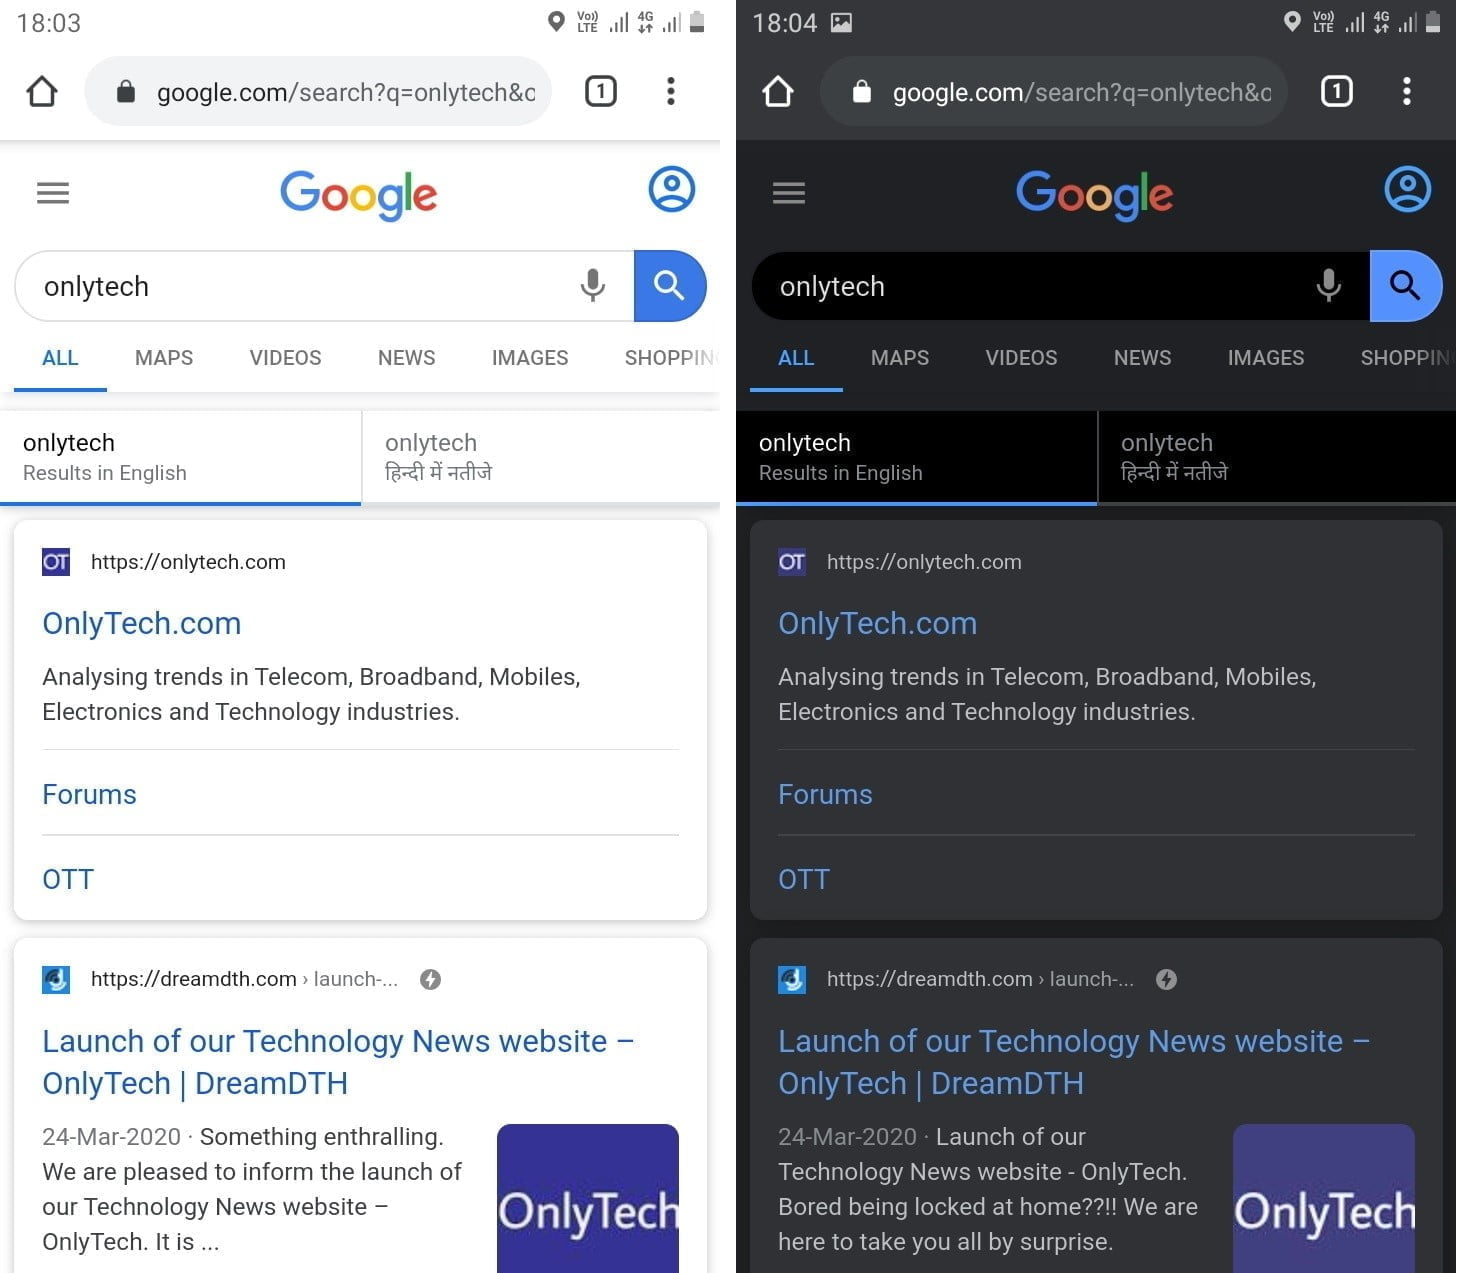 Chrome for Android may soon display Google Search results in dark theme